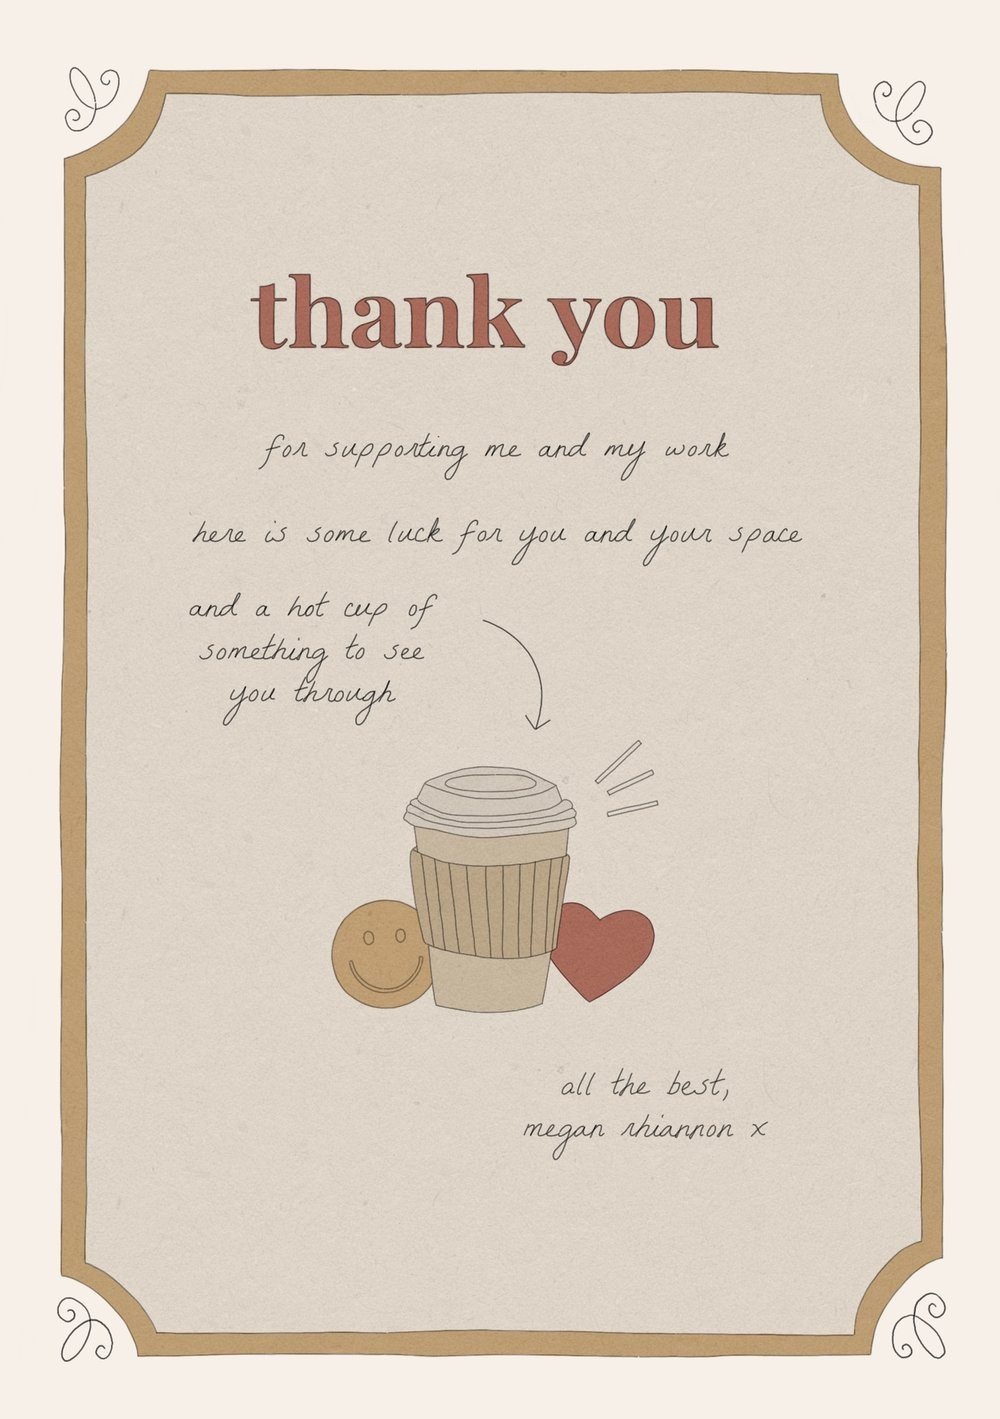 Thank You Card - August 2018: a thank-you card design to give away free with my shop orders (reverse).